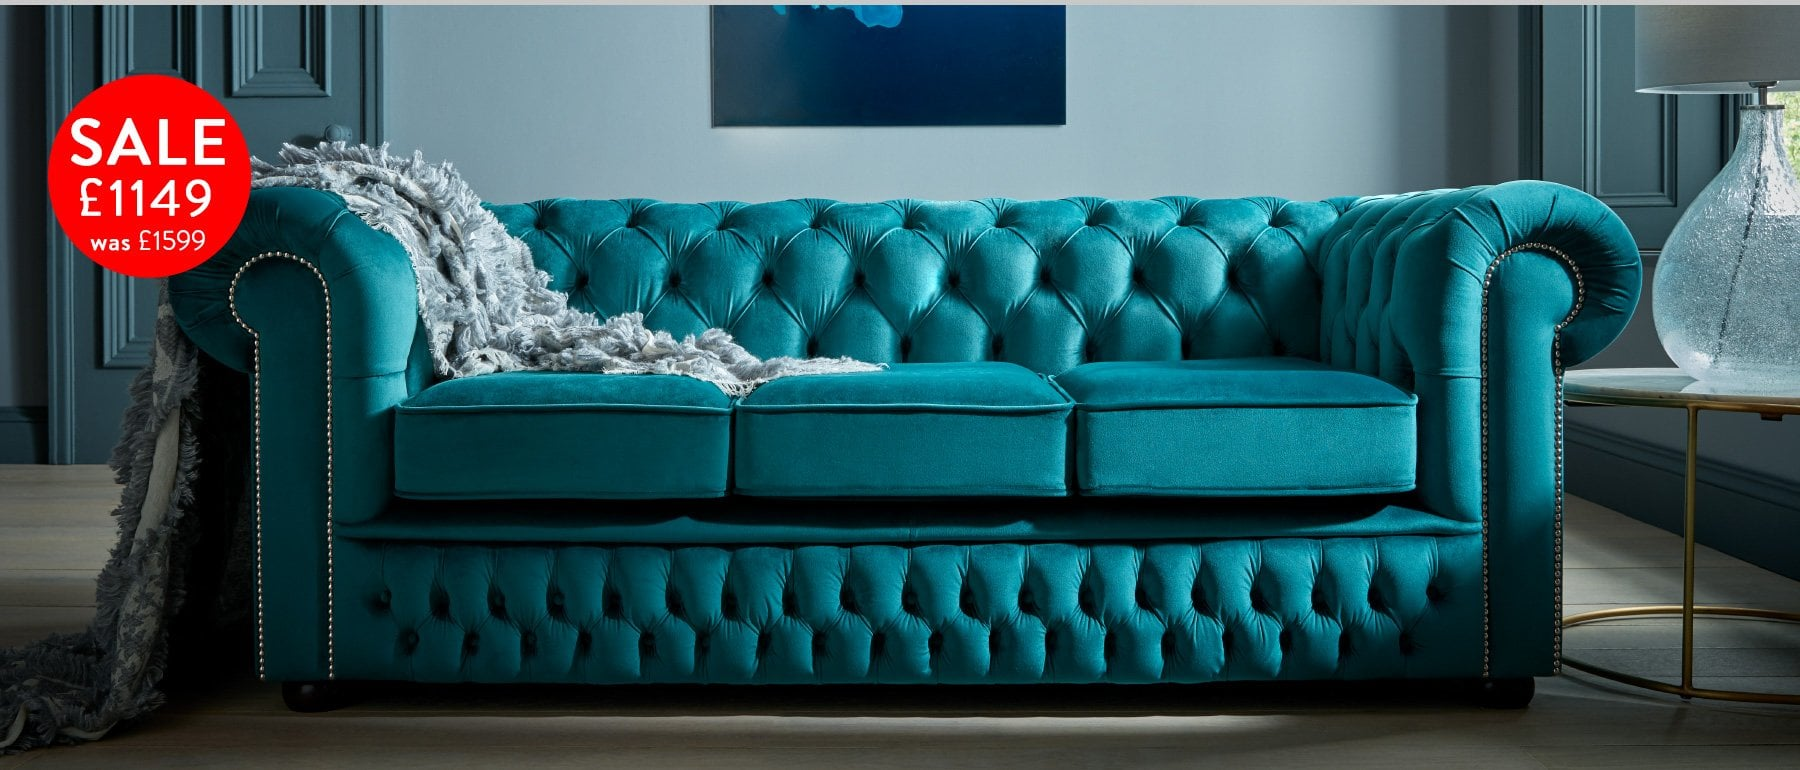 Chesterfield Sofa Online Uk Chesterfield Furniture Tufted Furniture Made In Britain Sofas